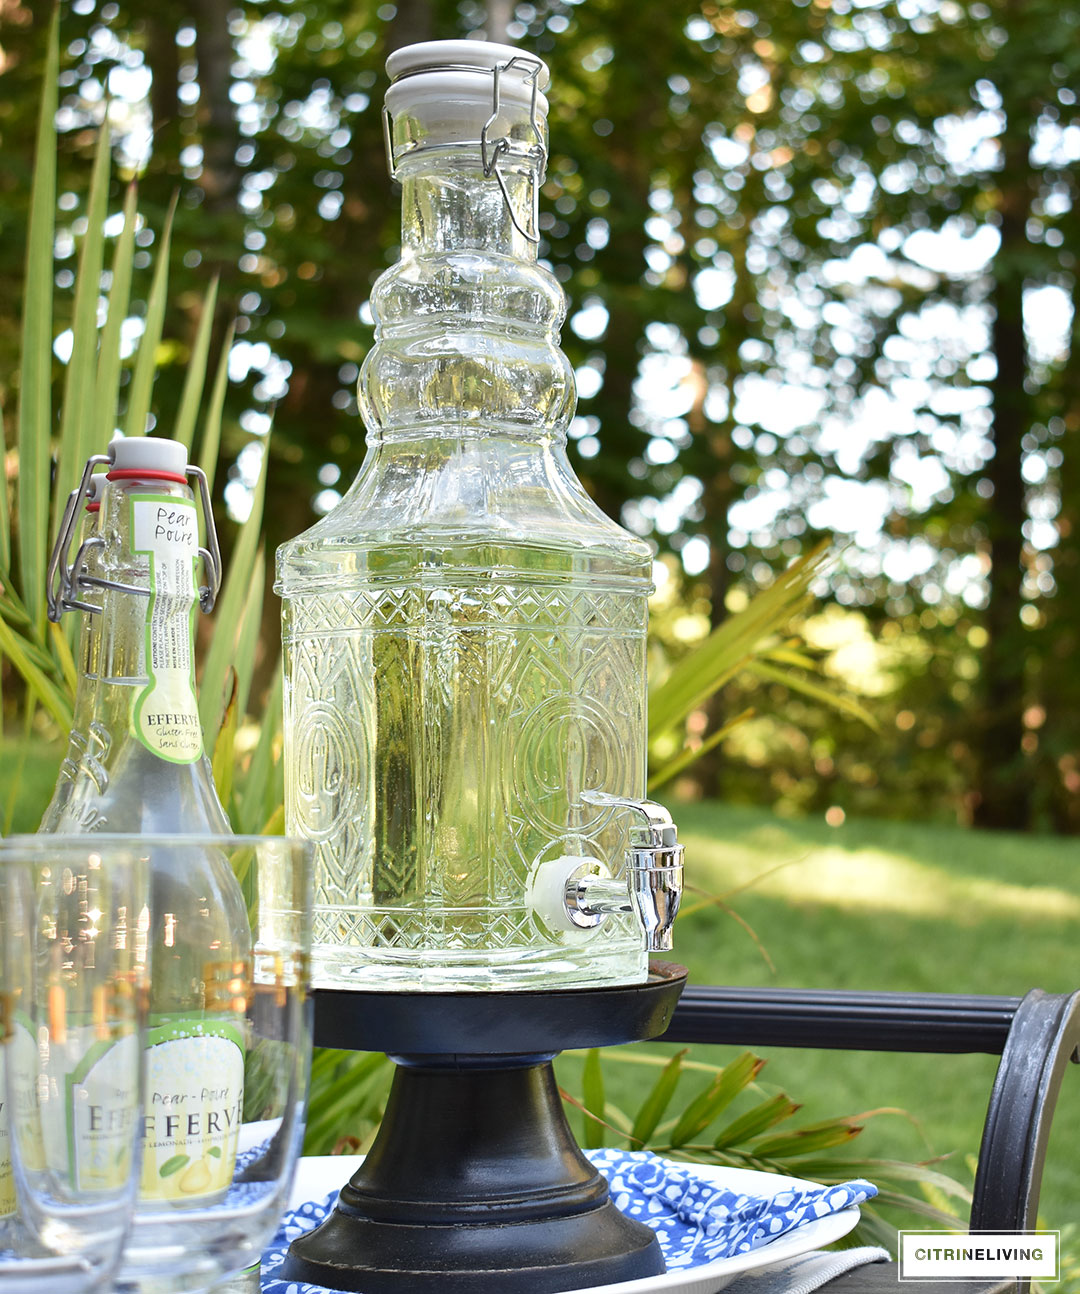 Use an outdoor bar cart layered with vintage inspired glassware and drink dispensers for your Summer entertaining.